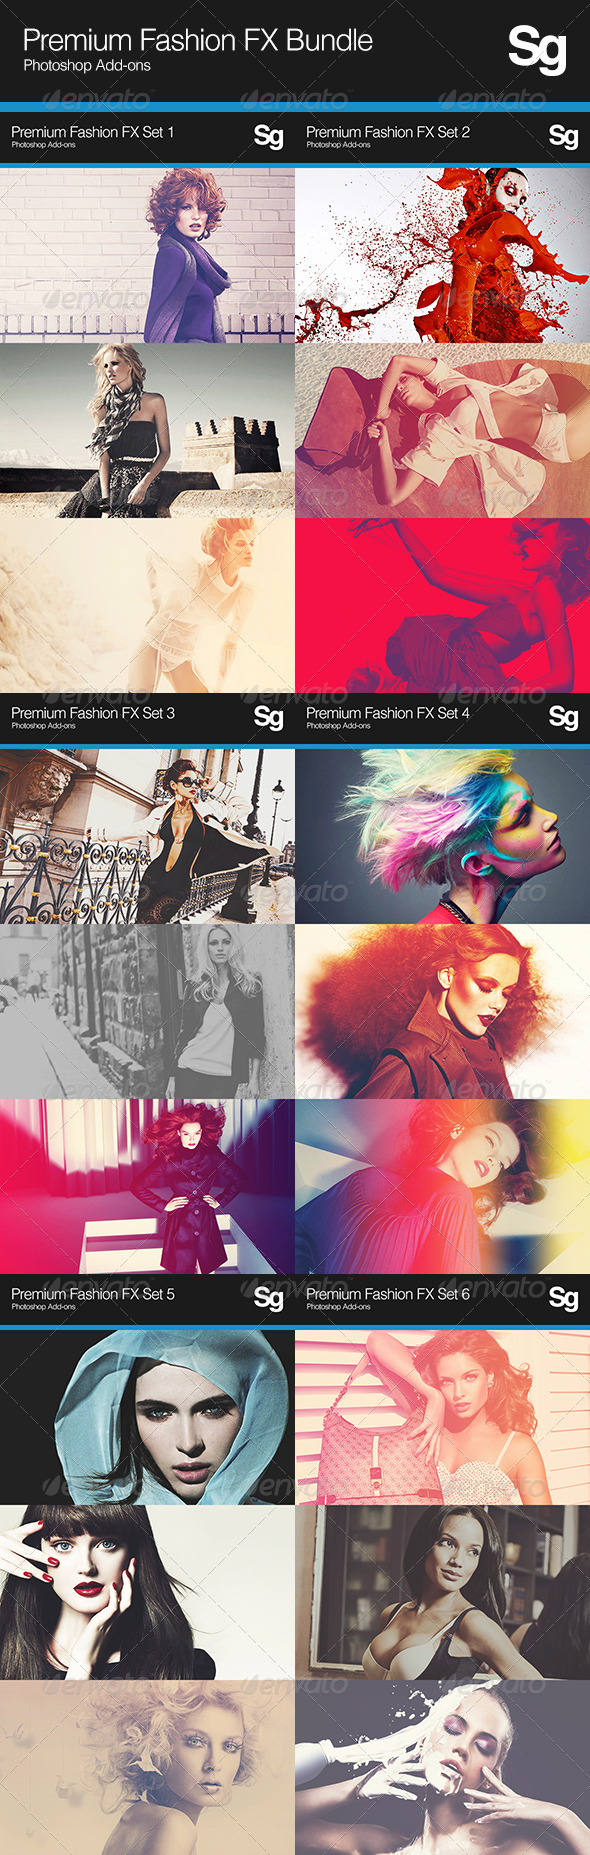 GraphicRiver Premium Fashion FX Bundle 6546153